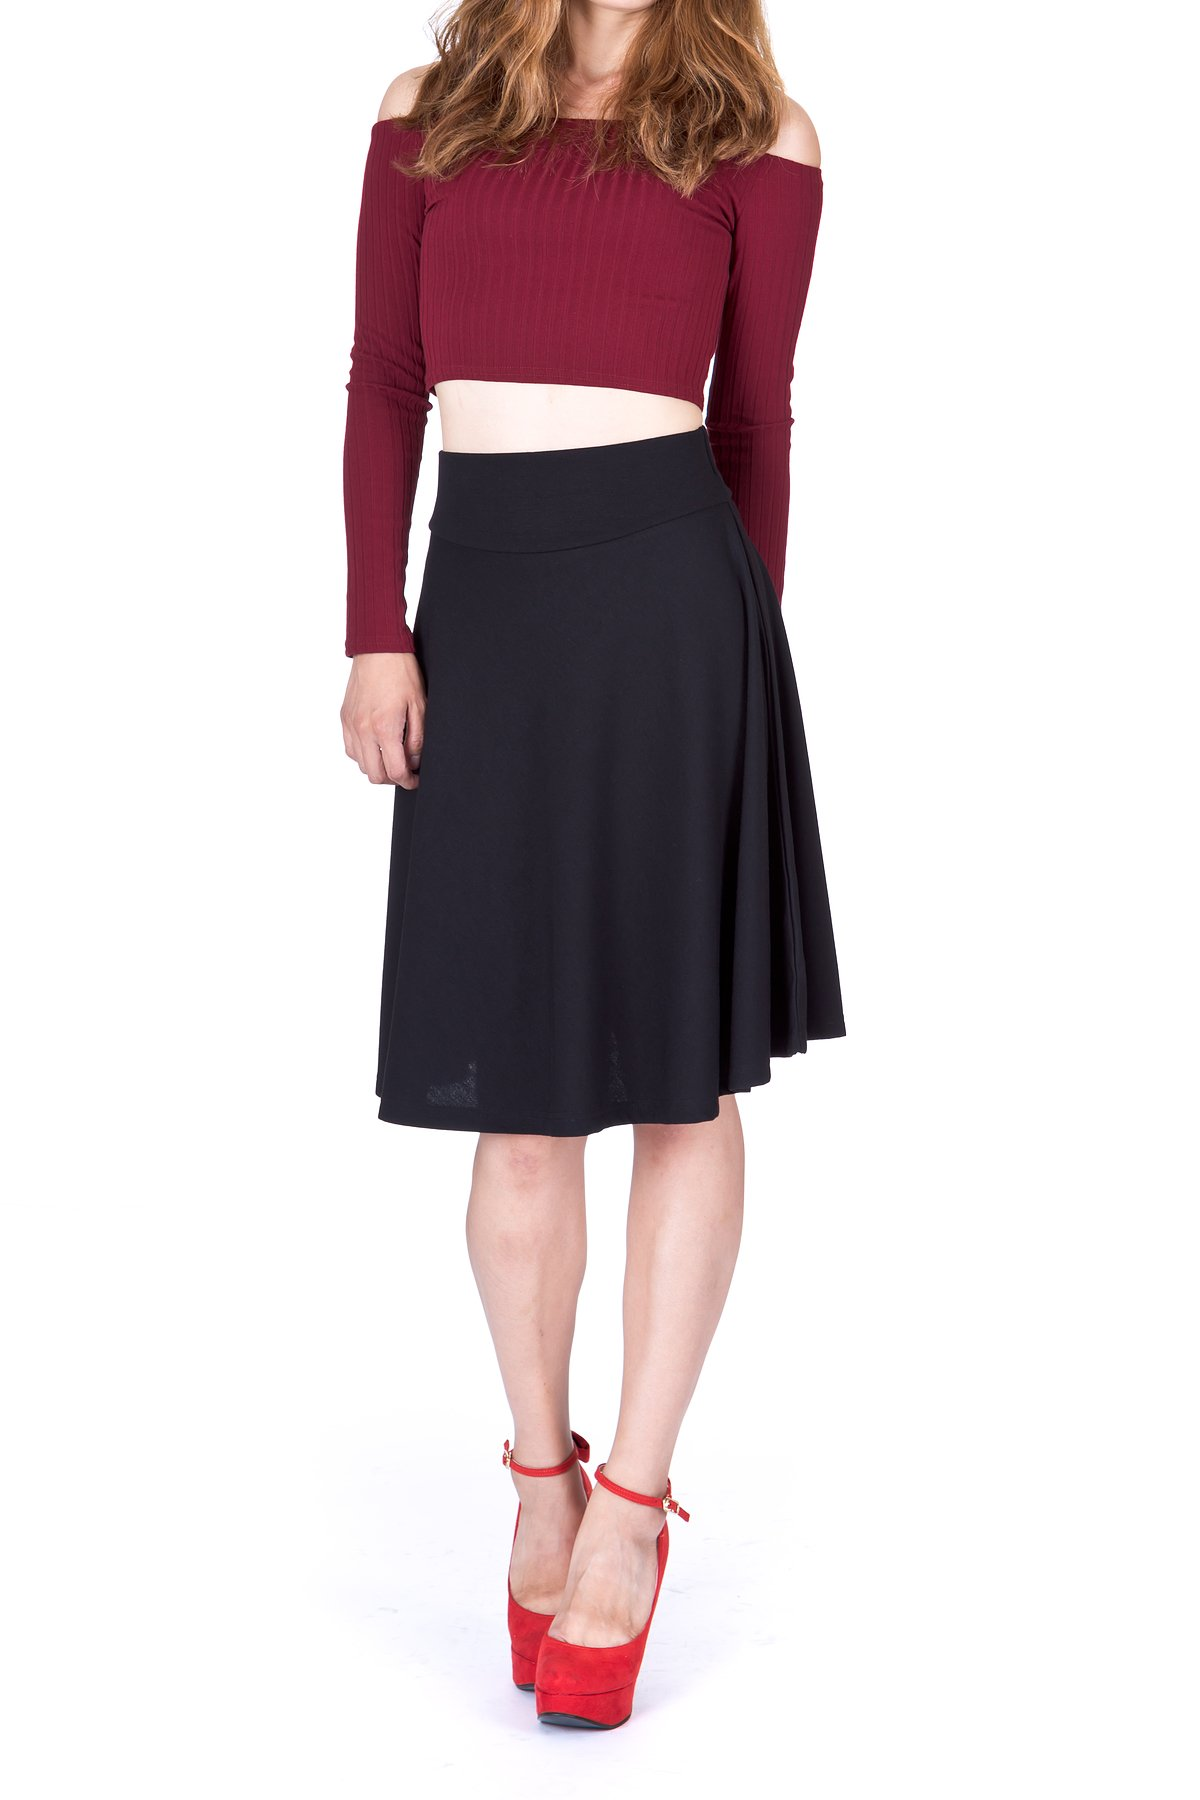 Impeccable Elastic High Waist A-line Full Flared Swing Skater Knee Length Skirt (M, Black) by Dani's Choice (Image #3)